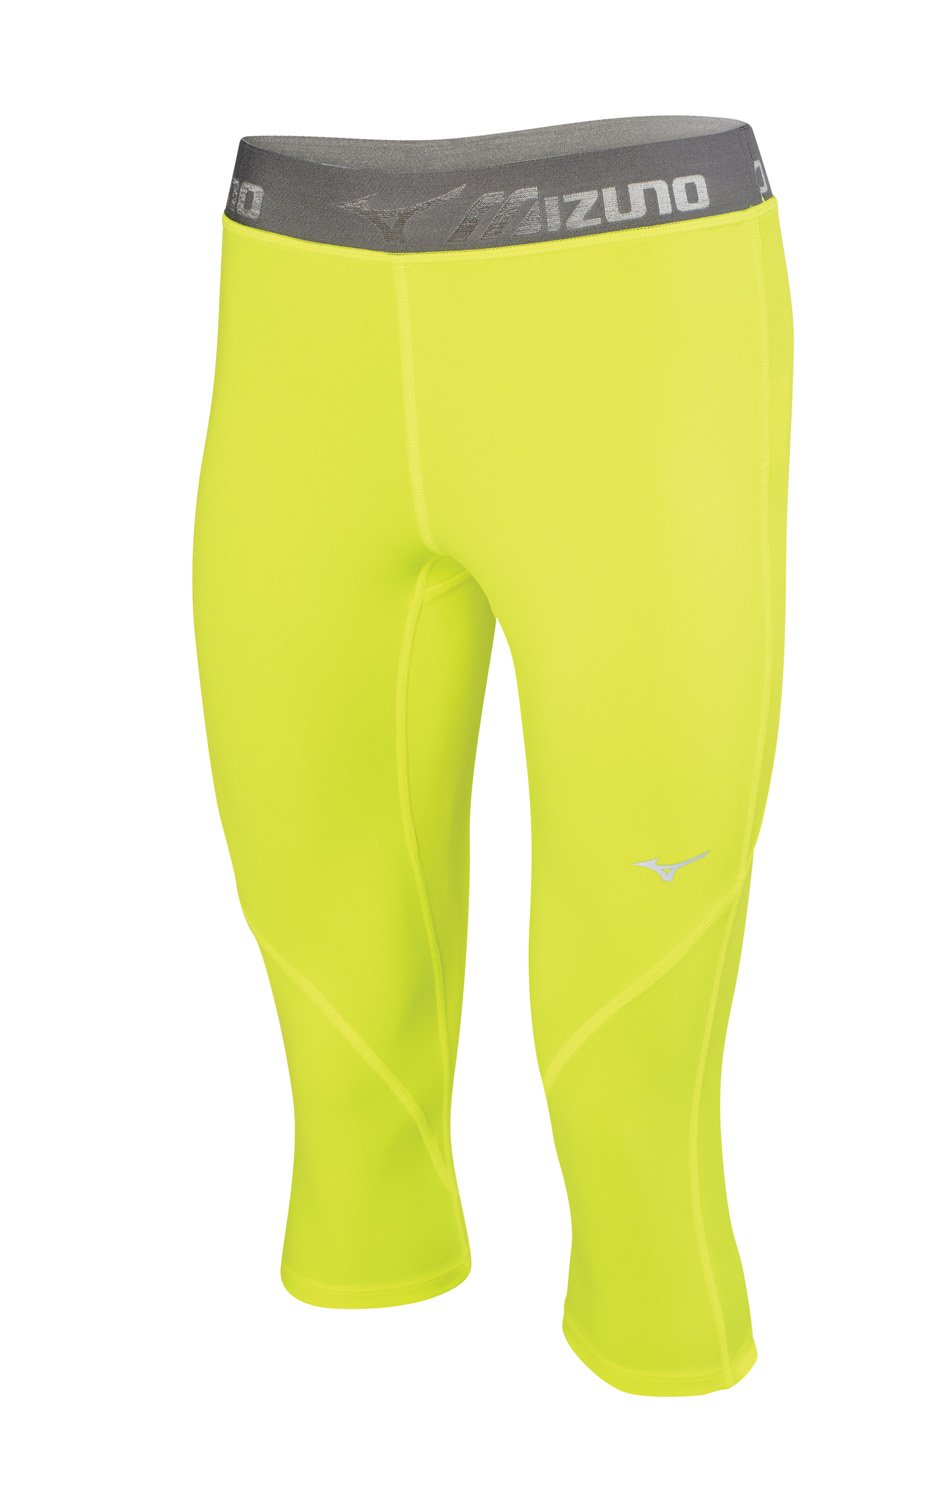 ea3674a7a1 Amazon.com: Mizuno Running Womens Impulse Core 3/4 Length Tights: Sports &  Outdoors